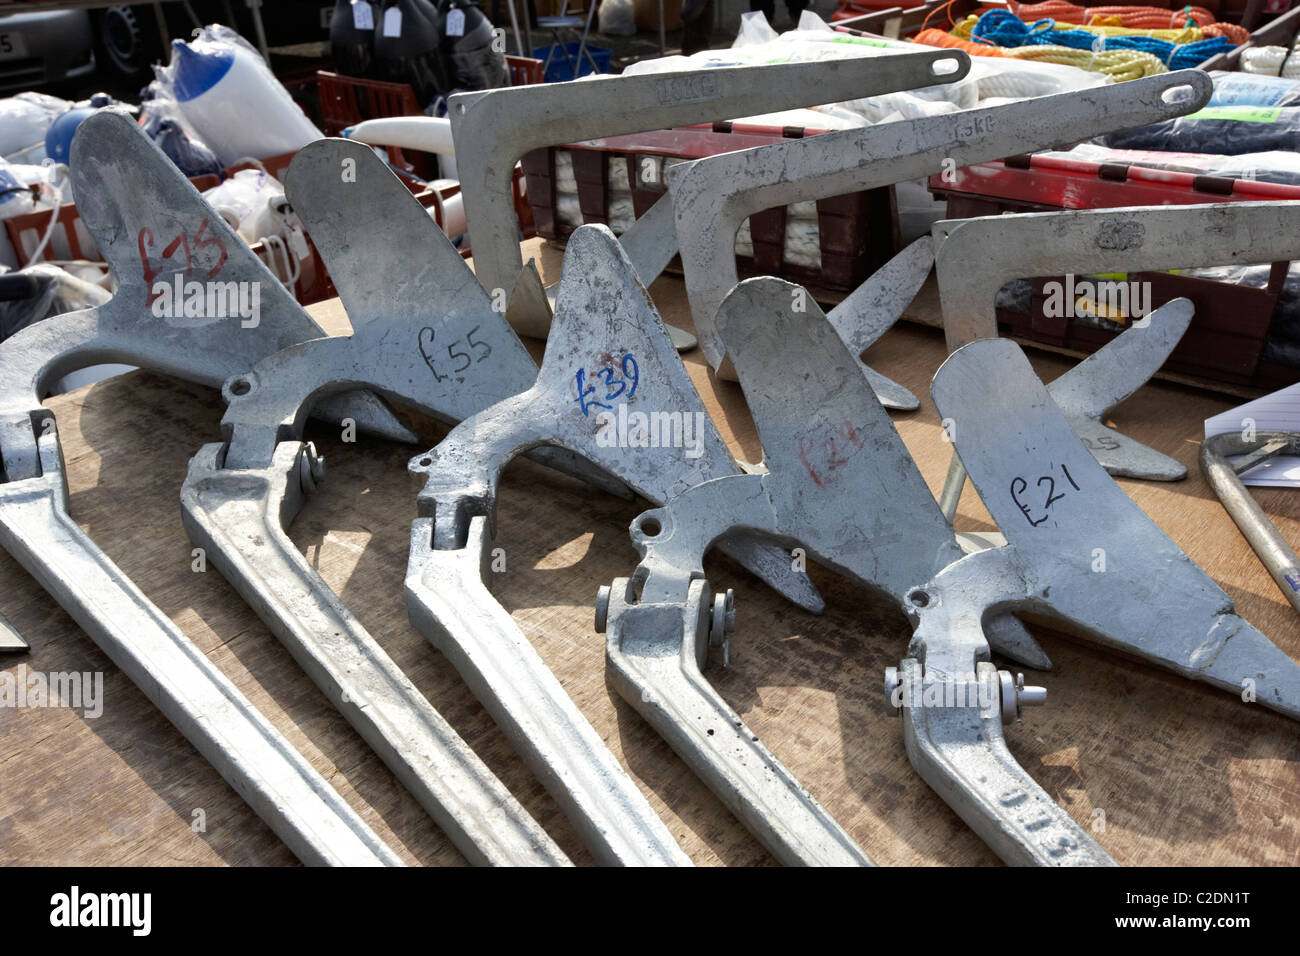 Boat Anchors For Sale >> Row Of Various Weight Plow Plough Anchors For Sale At Boat Jumble